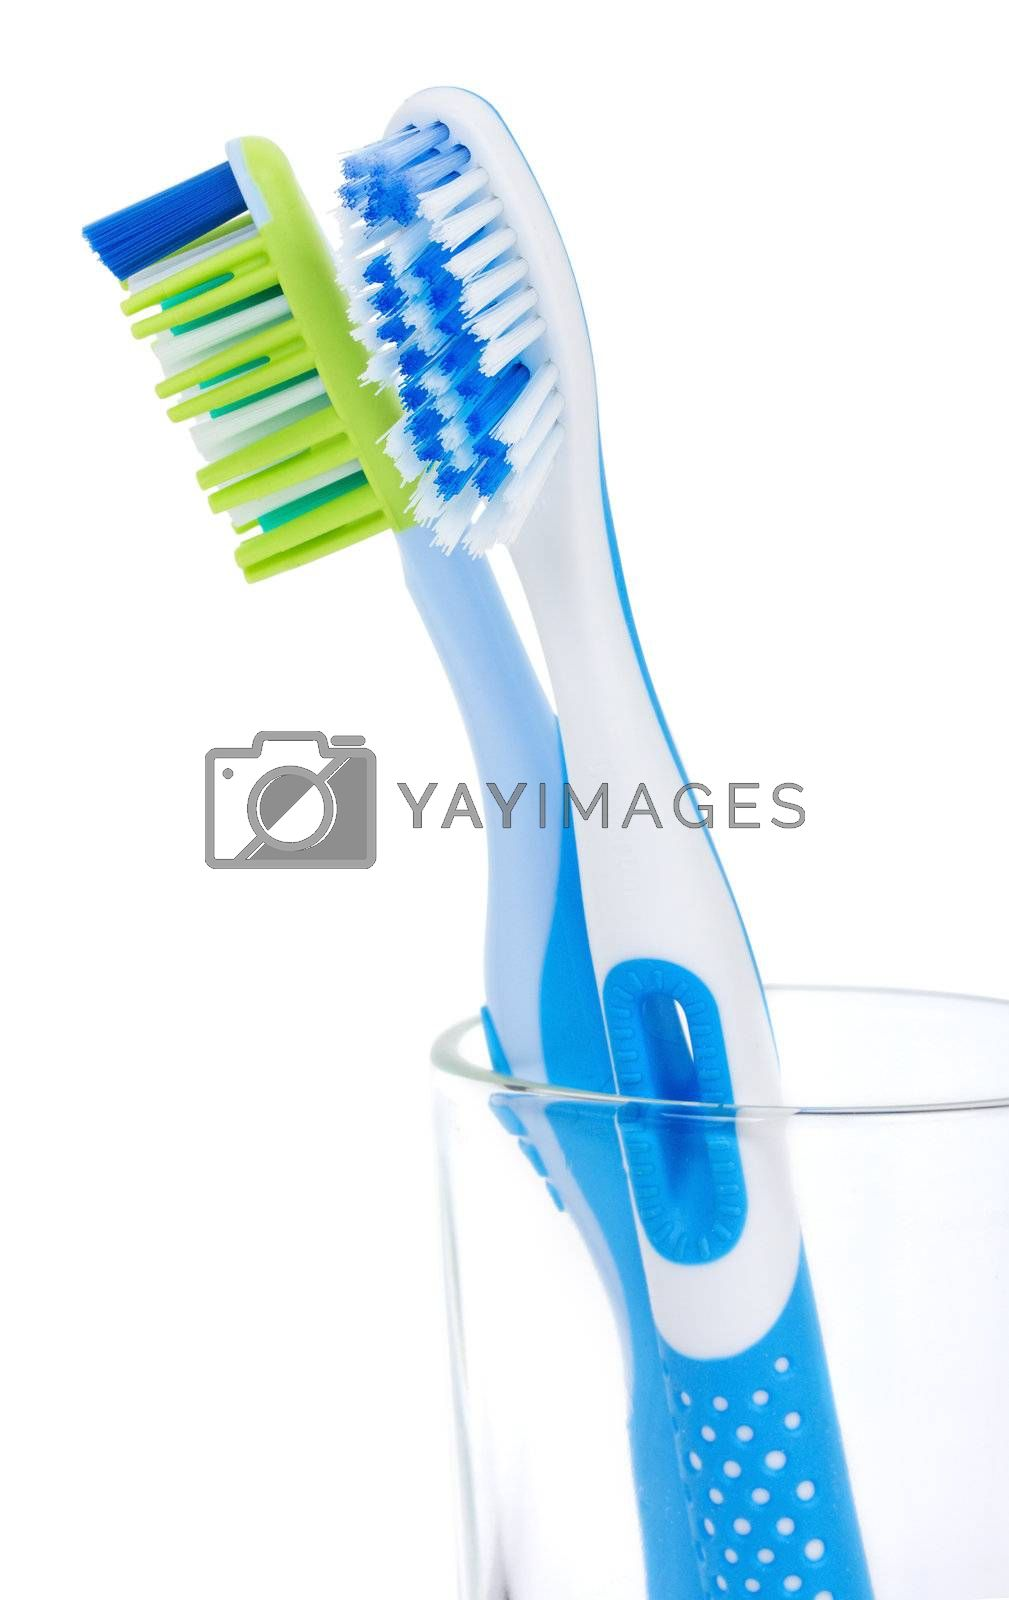 close-up two tooth brushes in glass, isolated on white